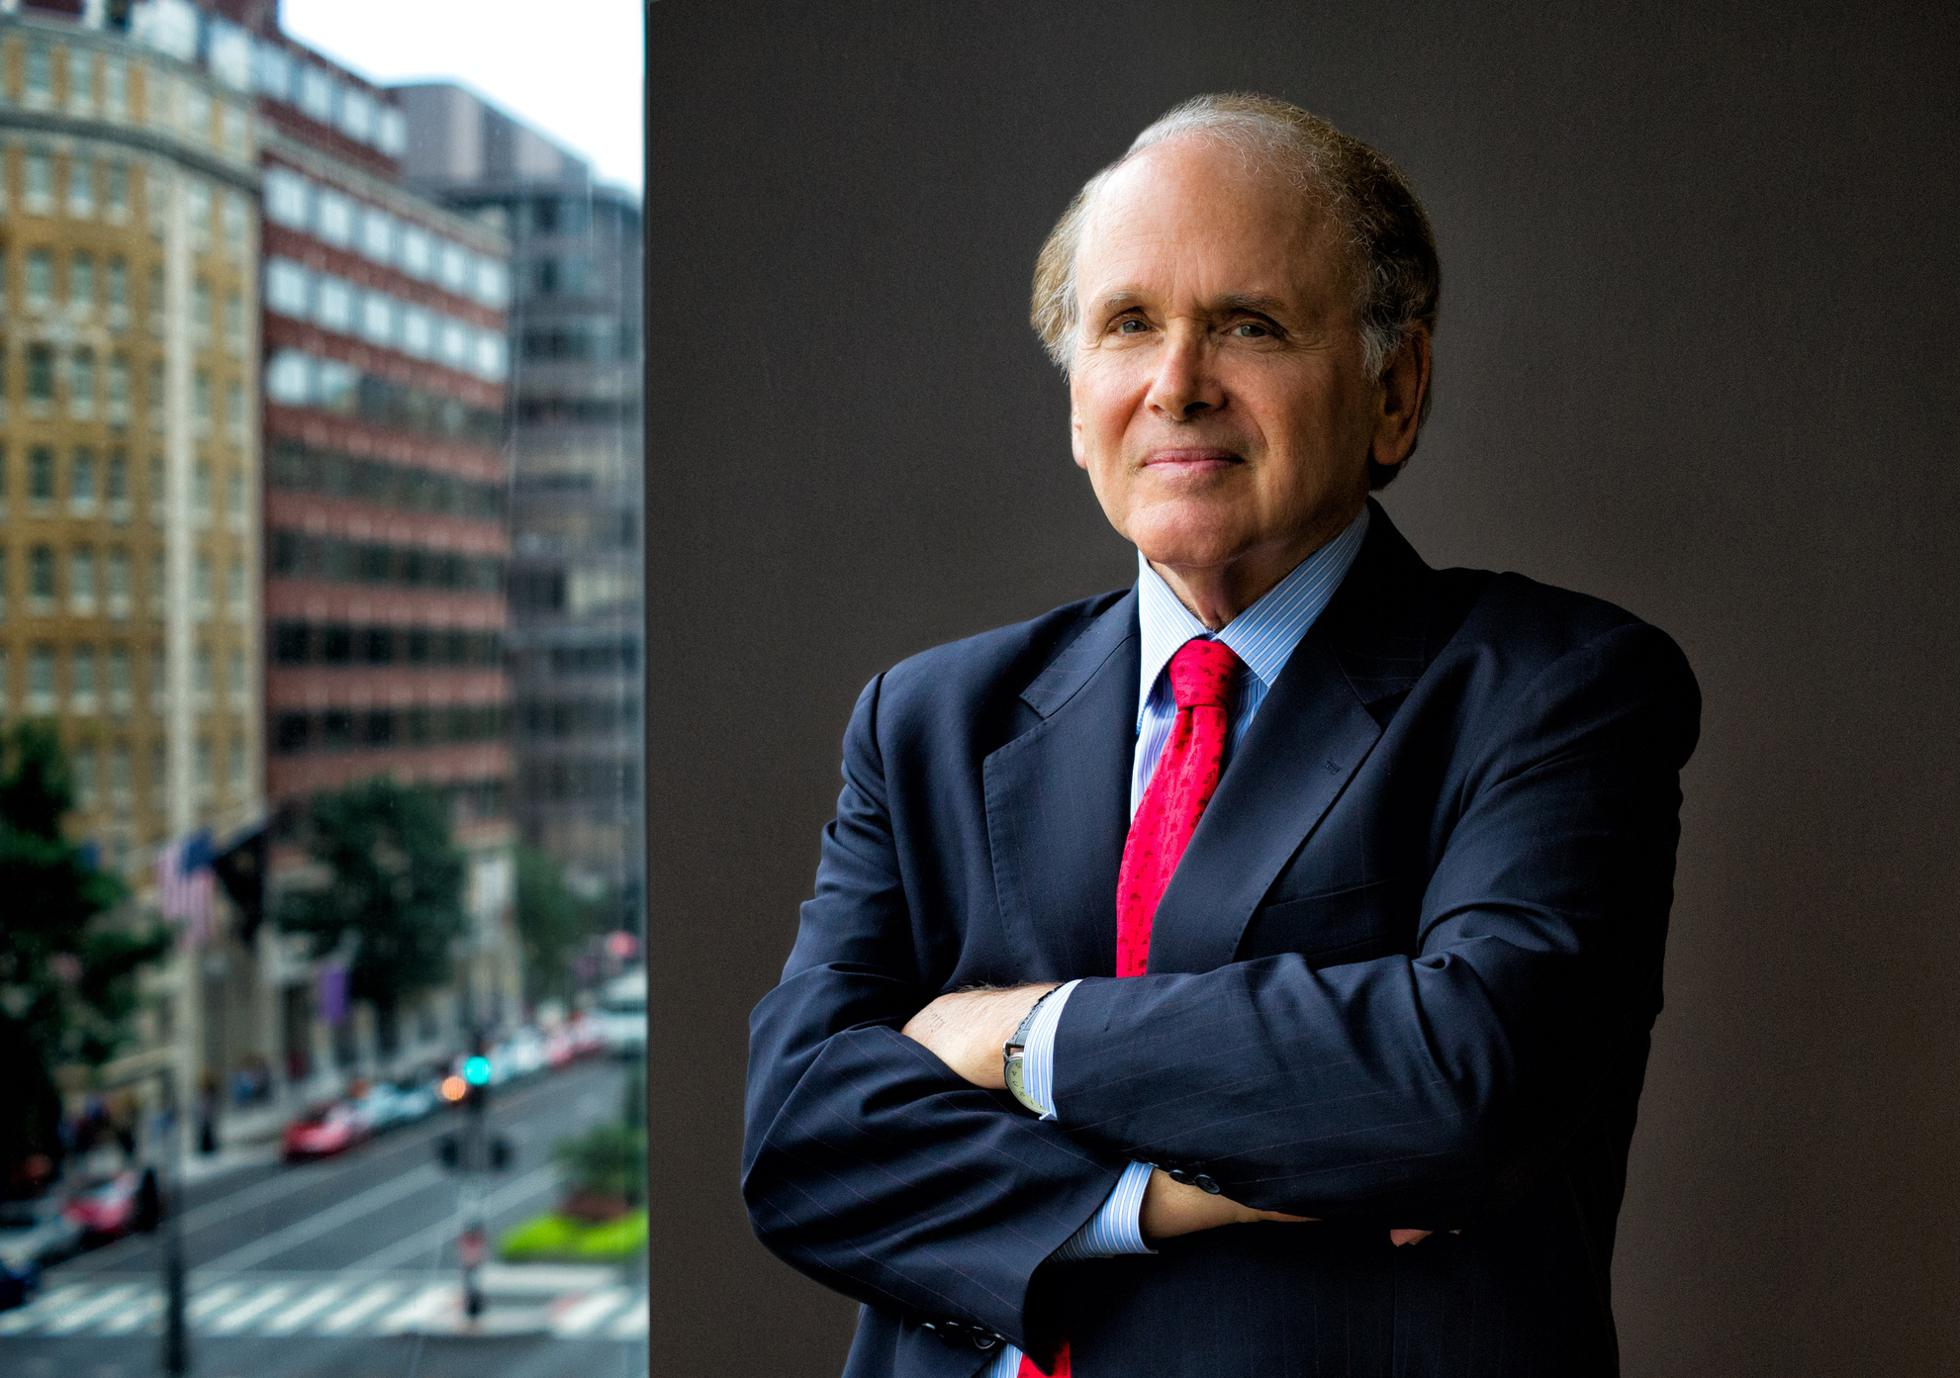 Daniel Yergin is a rare writer who can synthesize economics, energy, history, geopolitics and technology.